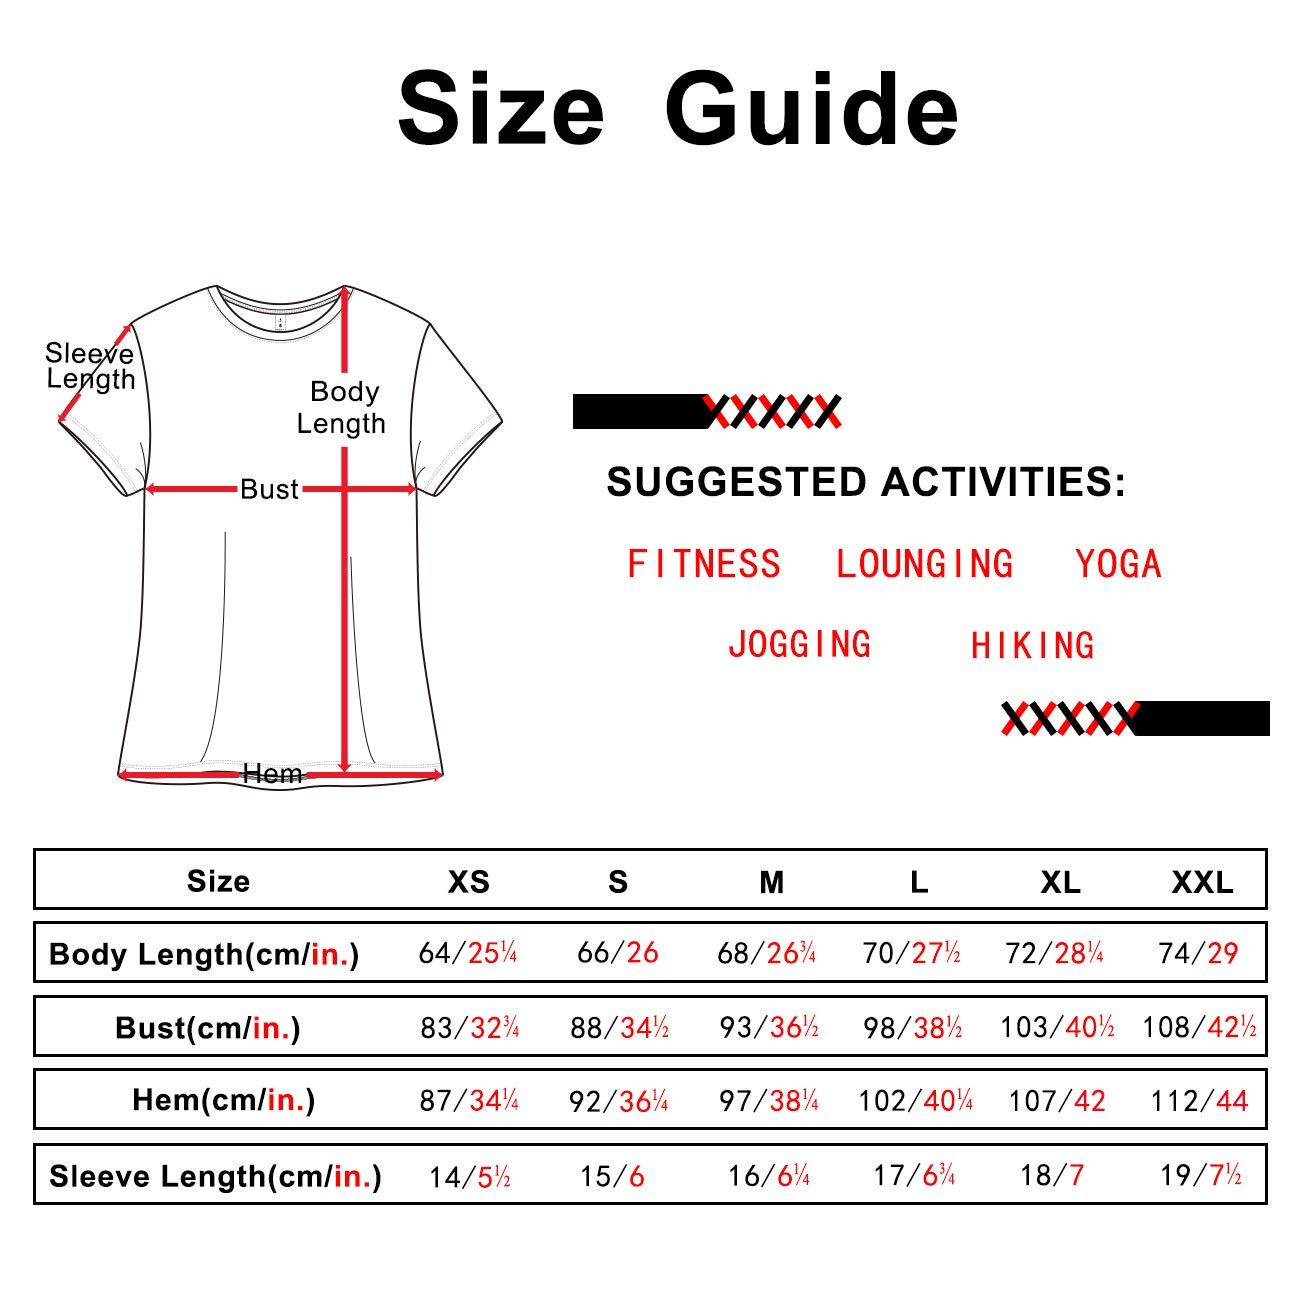 icyzone Workout Shirts for Women - Yoga Tops Gym Clothes Running Exercise Athletic T-Shirts for Women (Black, L)